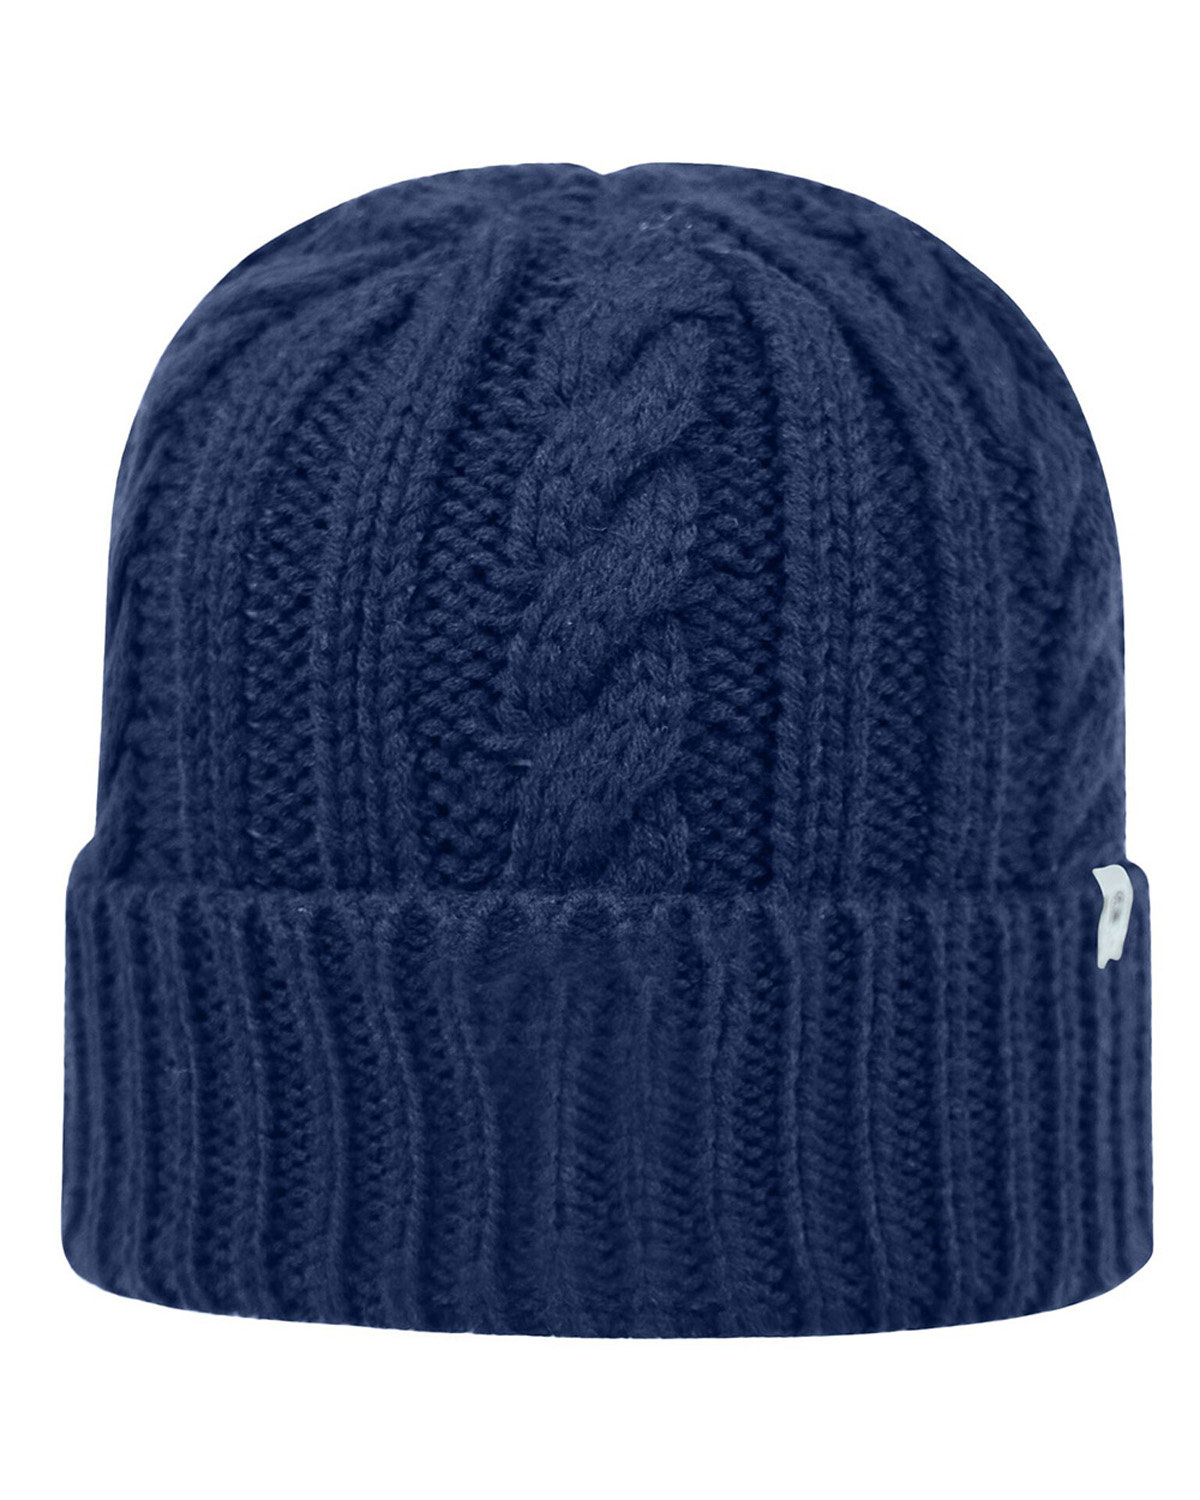 Top Of The World Adult Empire Knit Cap NAVY